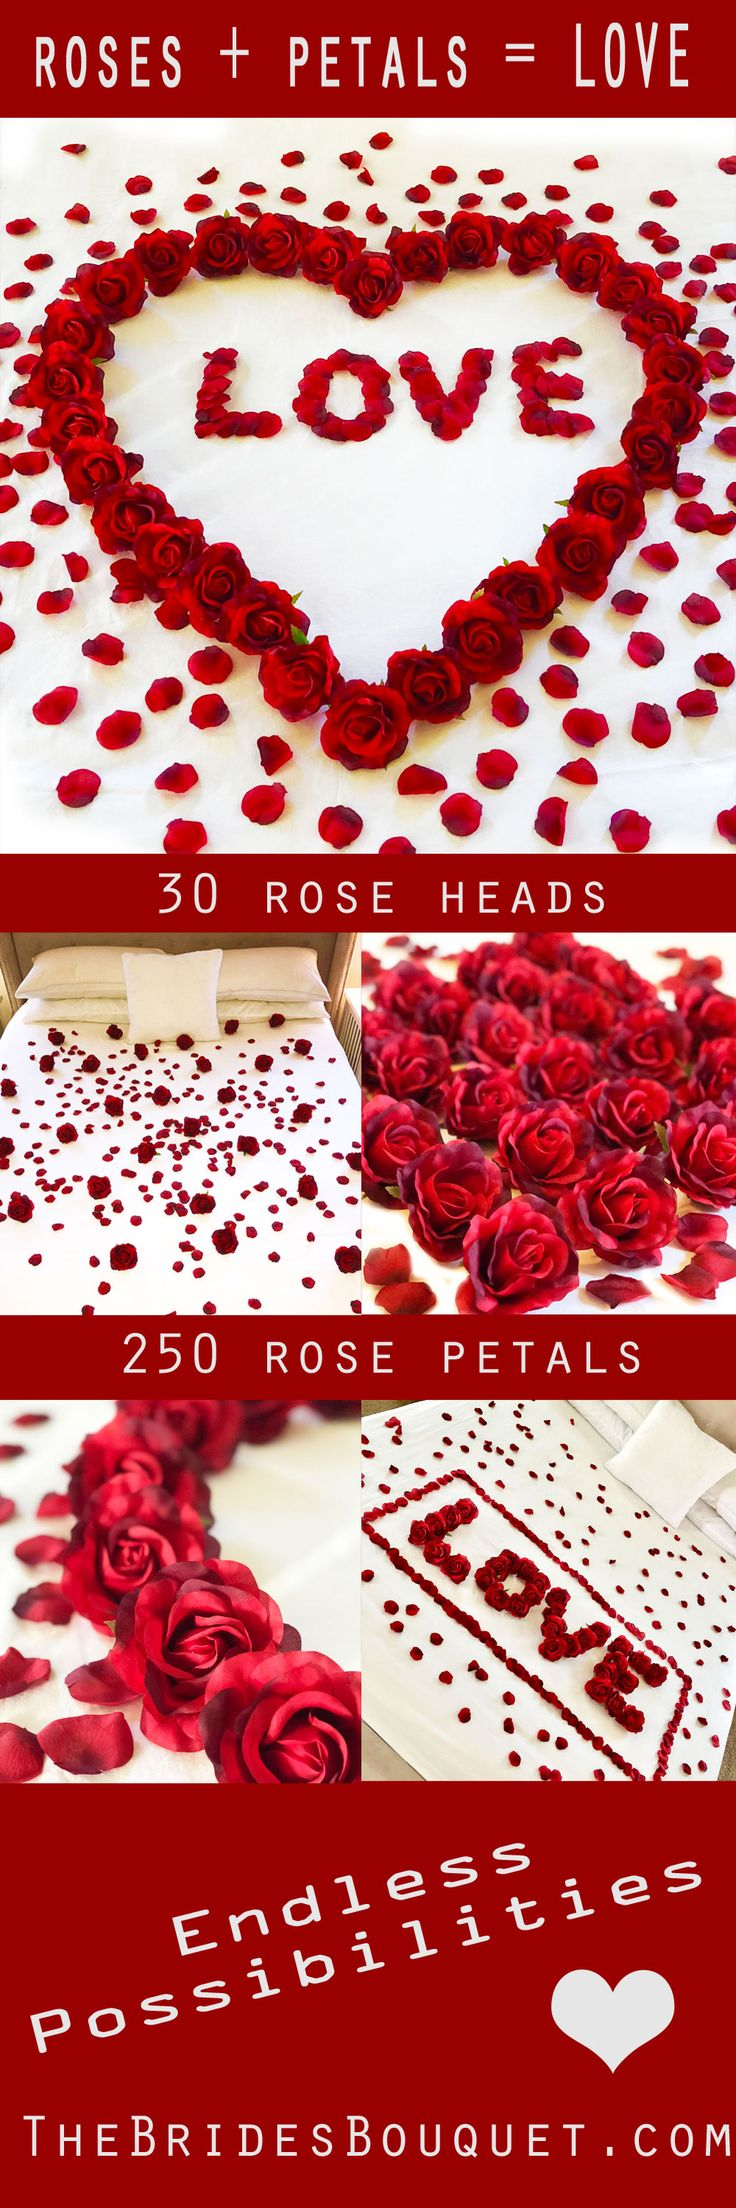 Turn up the romance with this romantic floral decoration package. You will receive everything you need to create your very own beautiful and memorable display. Includes 30 of the most realistic looking silk red roses and 250 matching red rose petals. Perfect for a special getaway weekend, anniversary, Valentine's Day! TheBridesBouquet.com